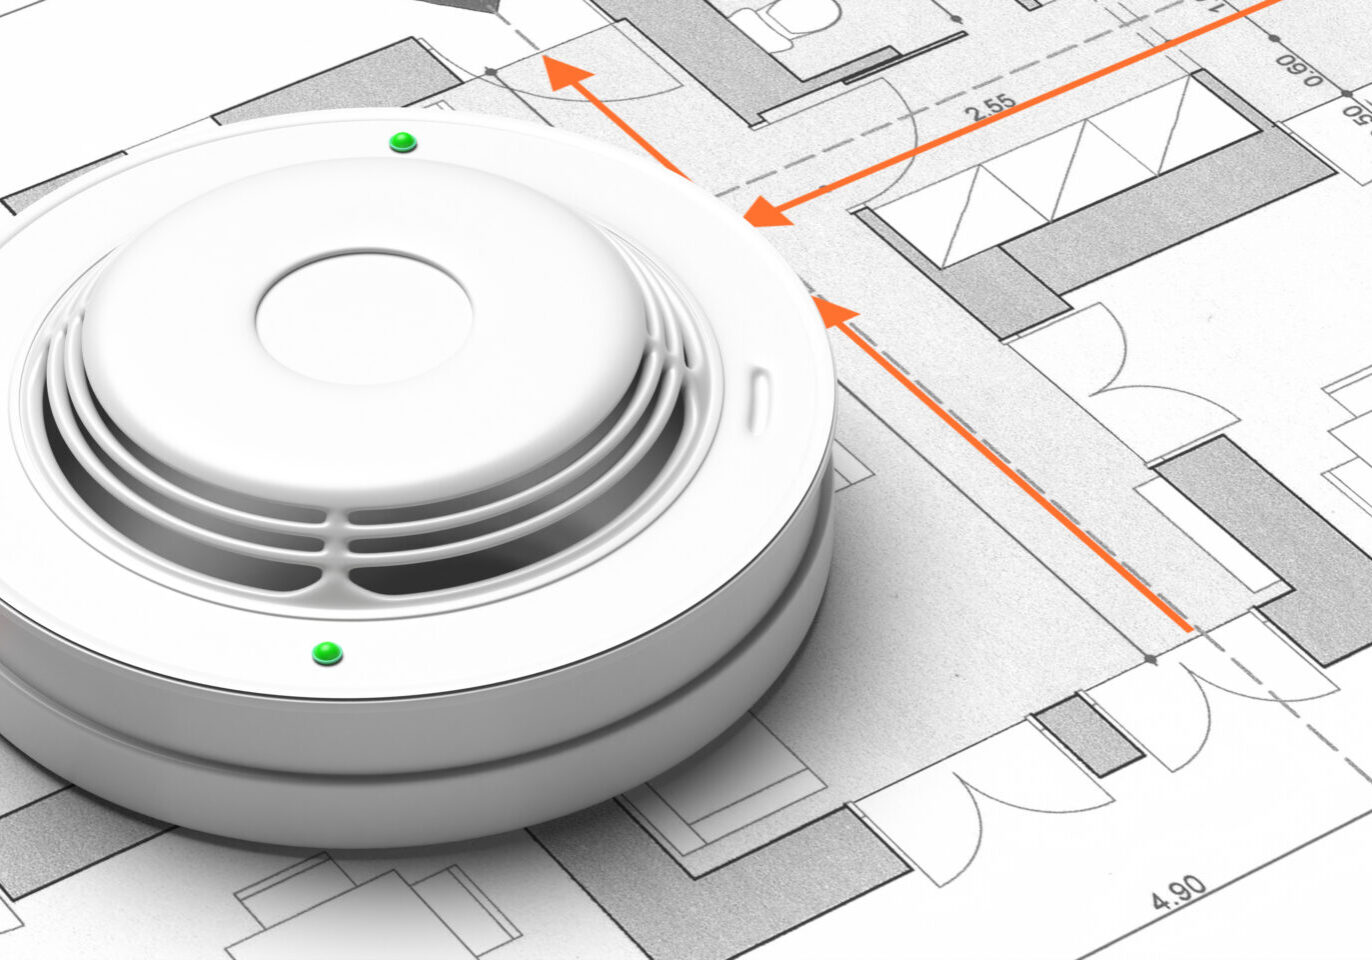 Fire safety system, emergency evacuation plan. Smoke detector on blueprint drawing background. Fire alert device. 3d illustration